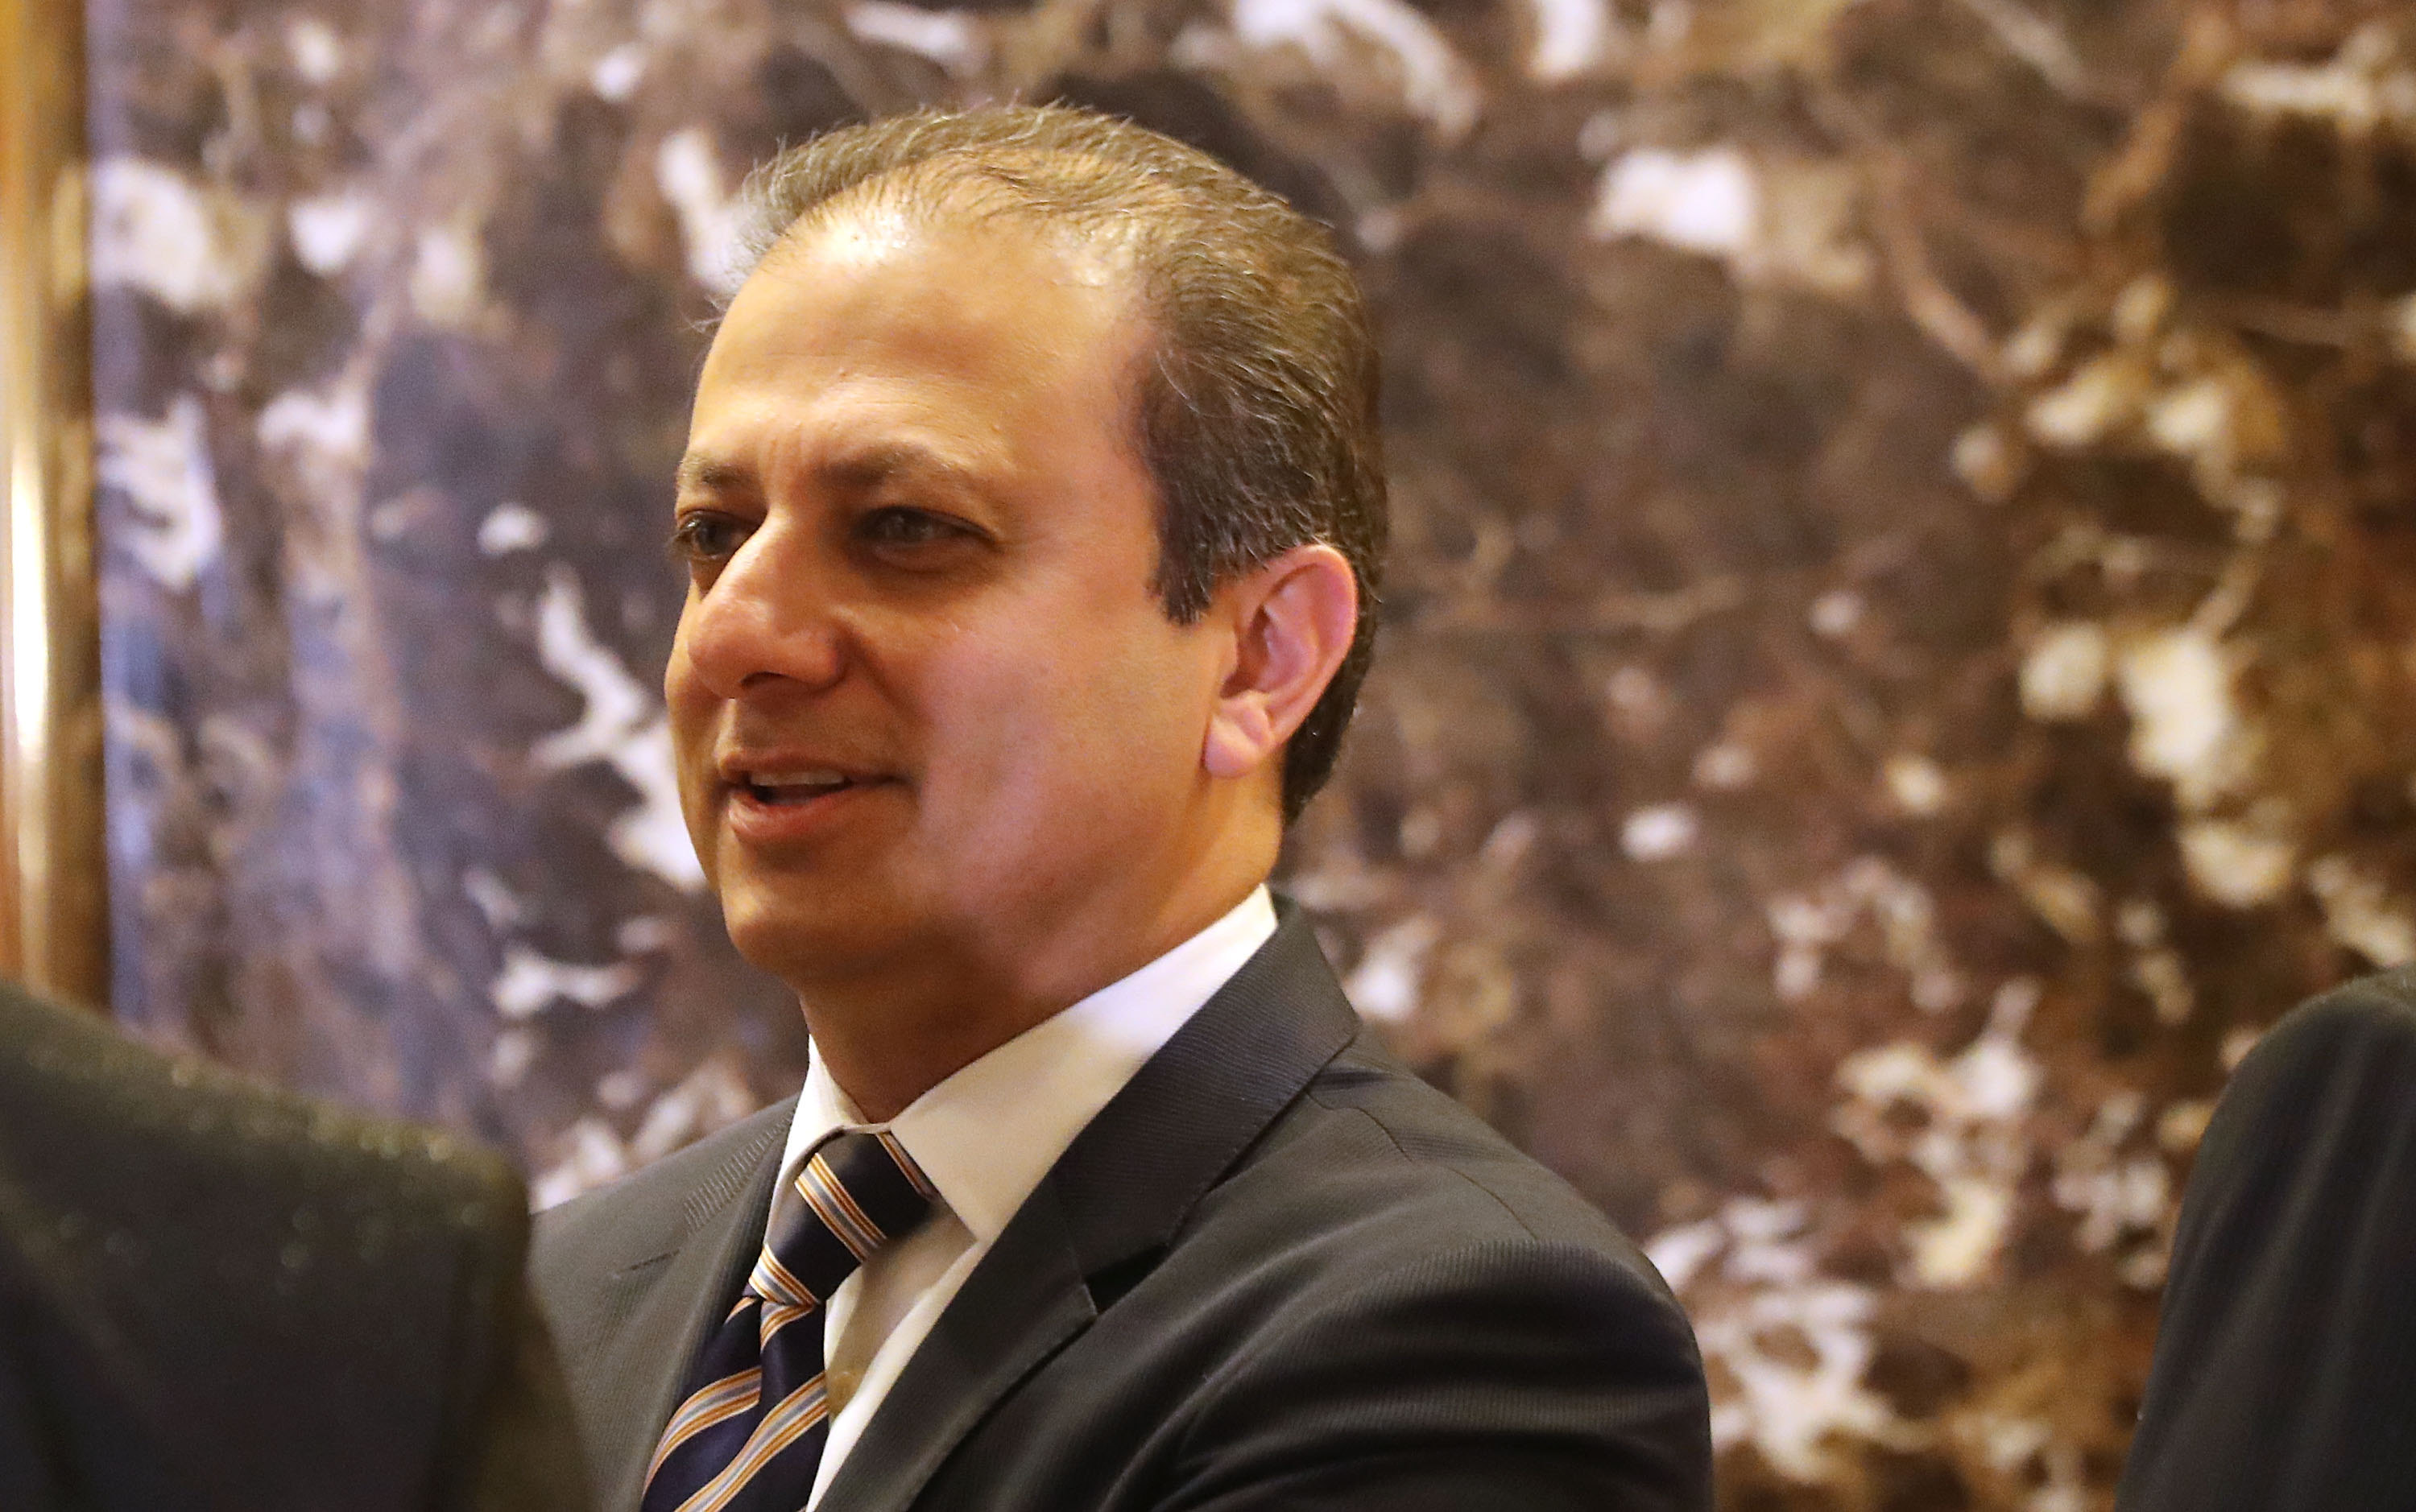 U.S. Attorney  Preet Bharara has made it his mission to root out corruption in New York State government. (Getty Images)